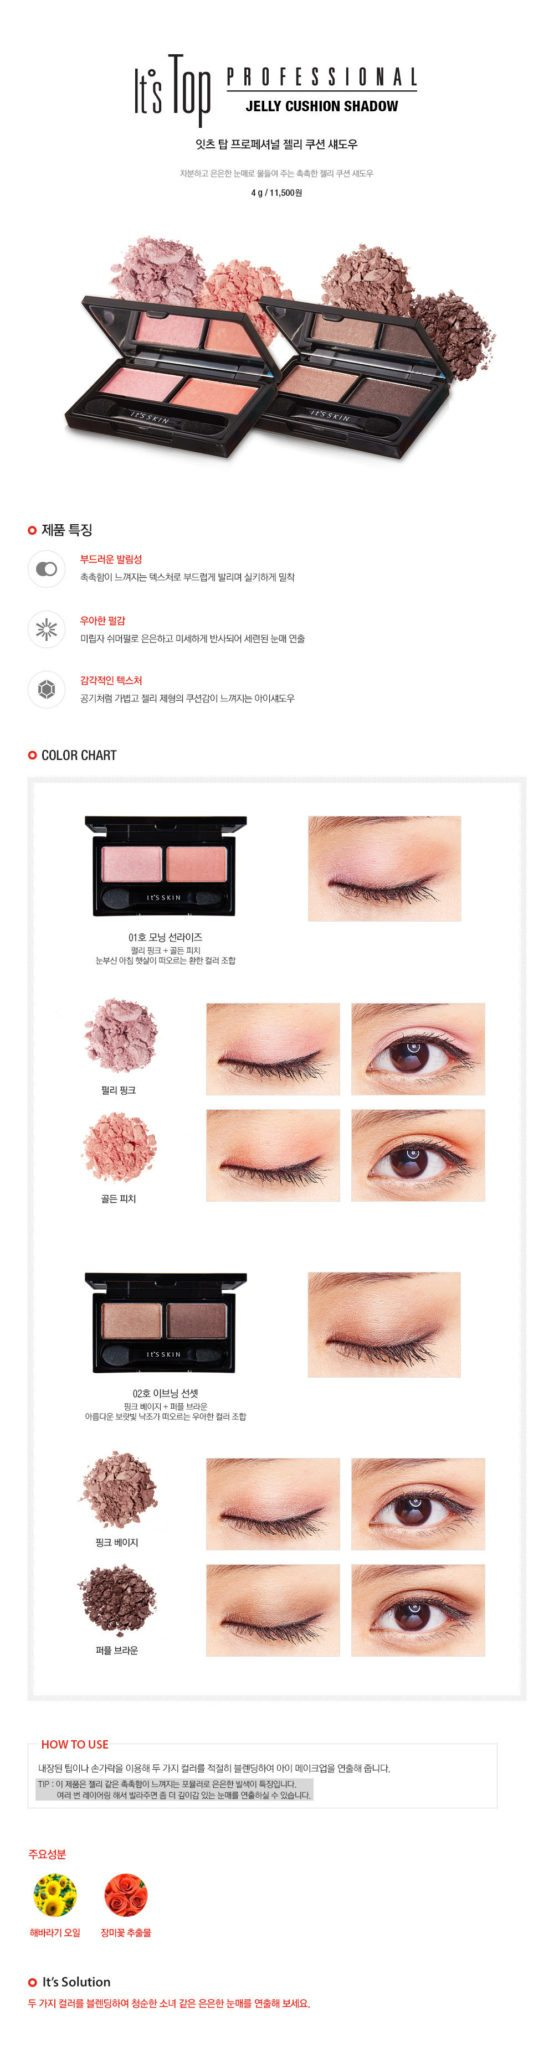 it's Skin It's Top Professional Jelly Cushion Shadow 20g malaysia singapore indonesia